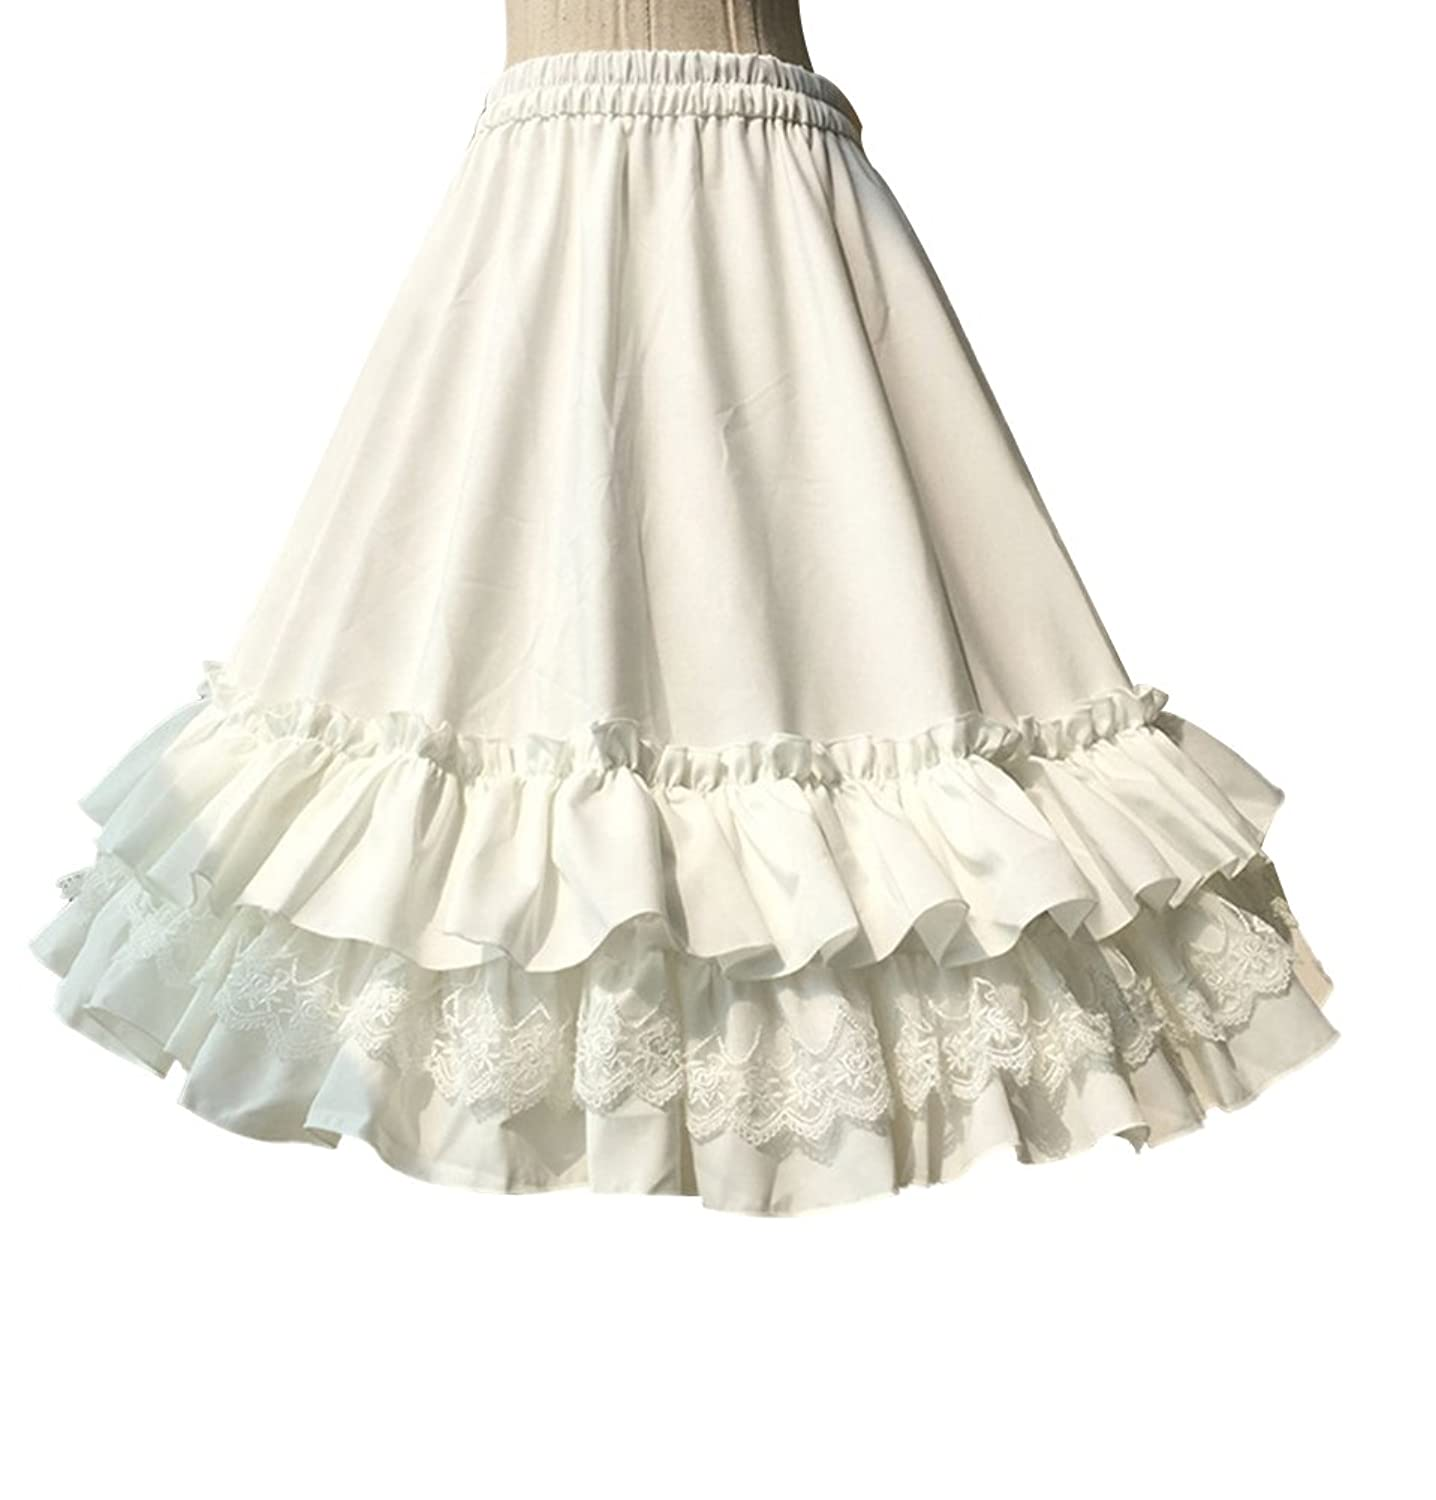 1950s Crinoline Skirt | Crinoline Slips | Crinoline Petticoat 50s Cotton Petticoat  AT vintagedancer.com